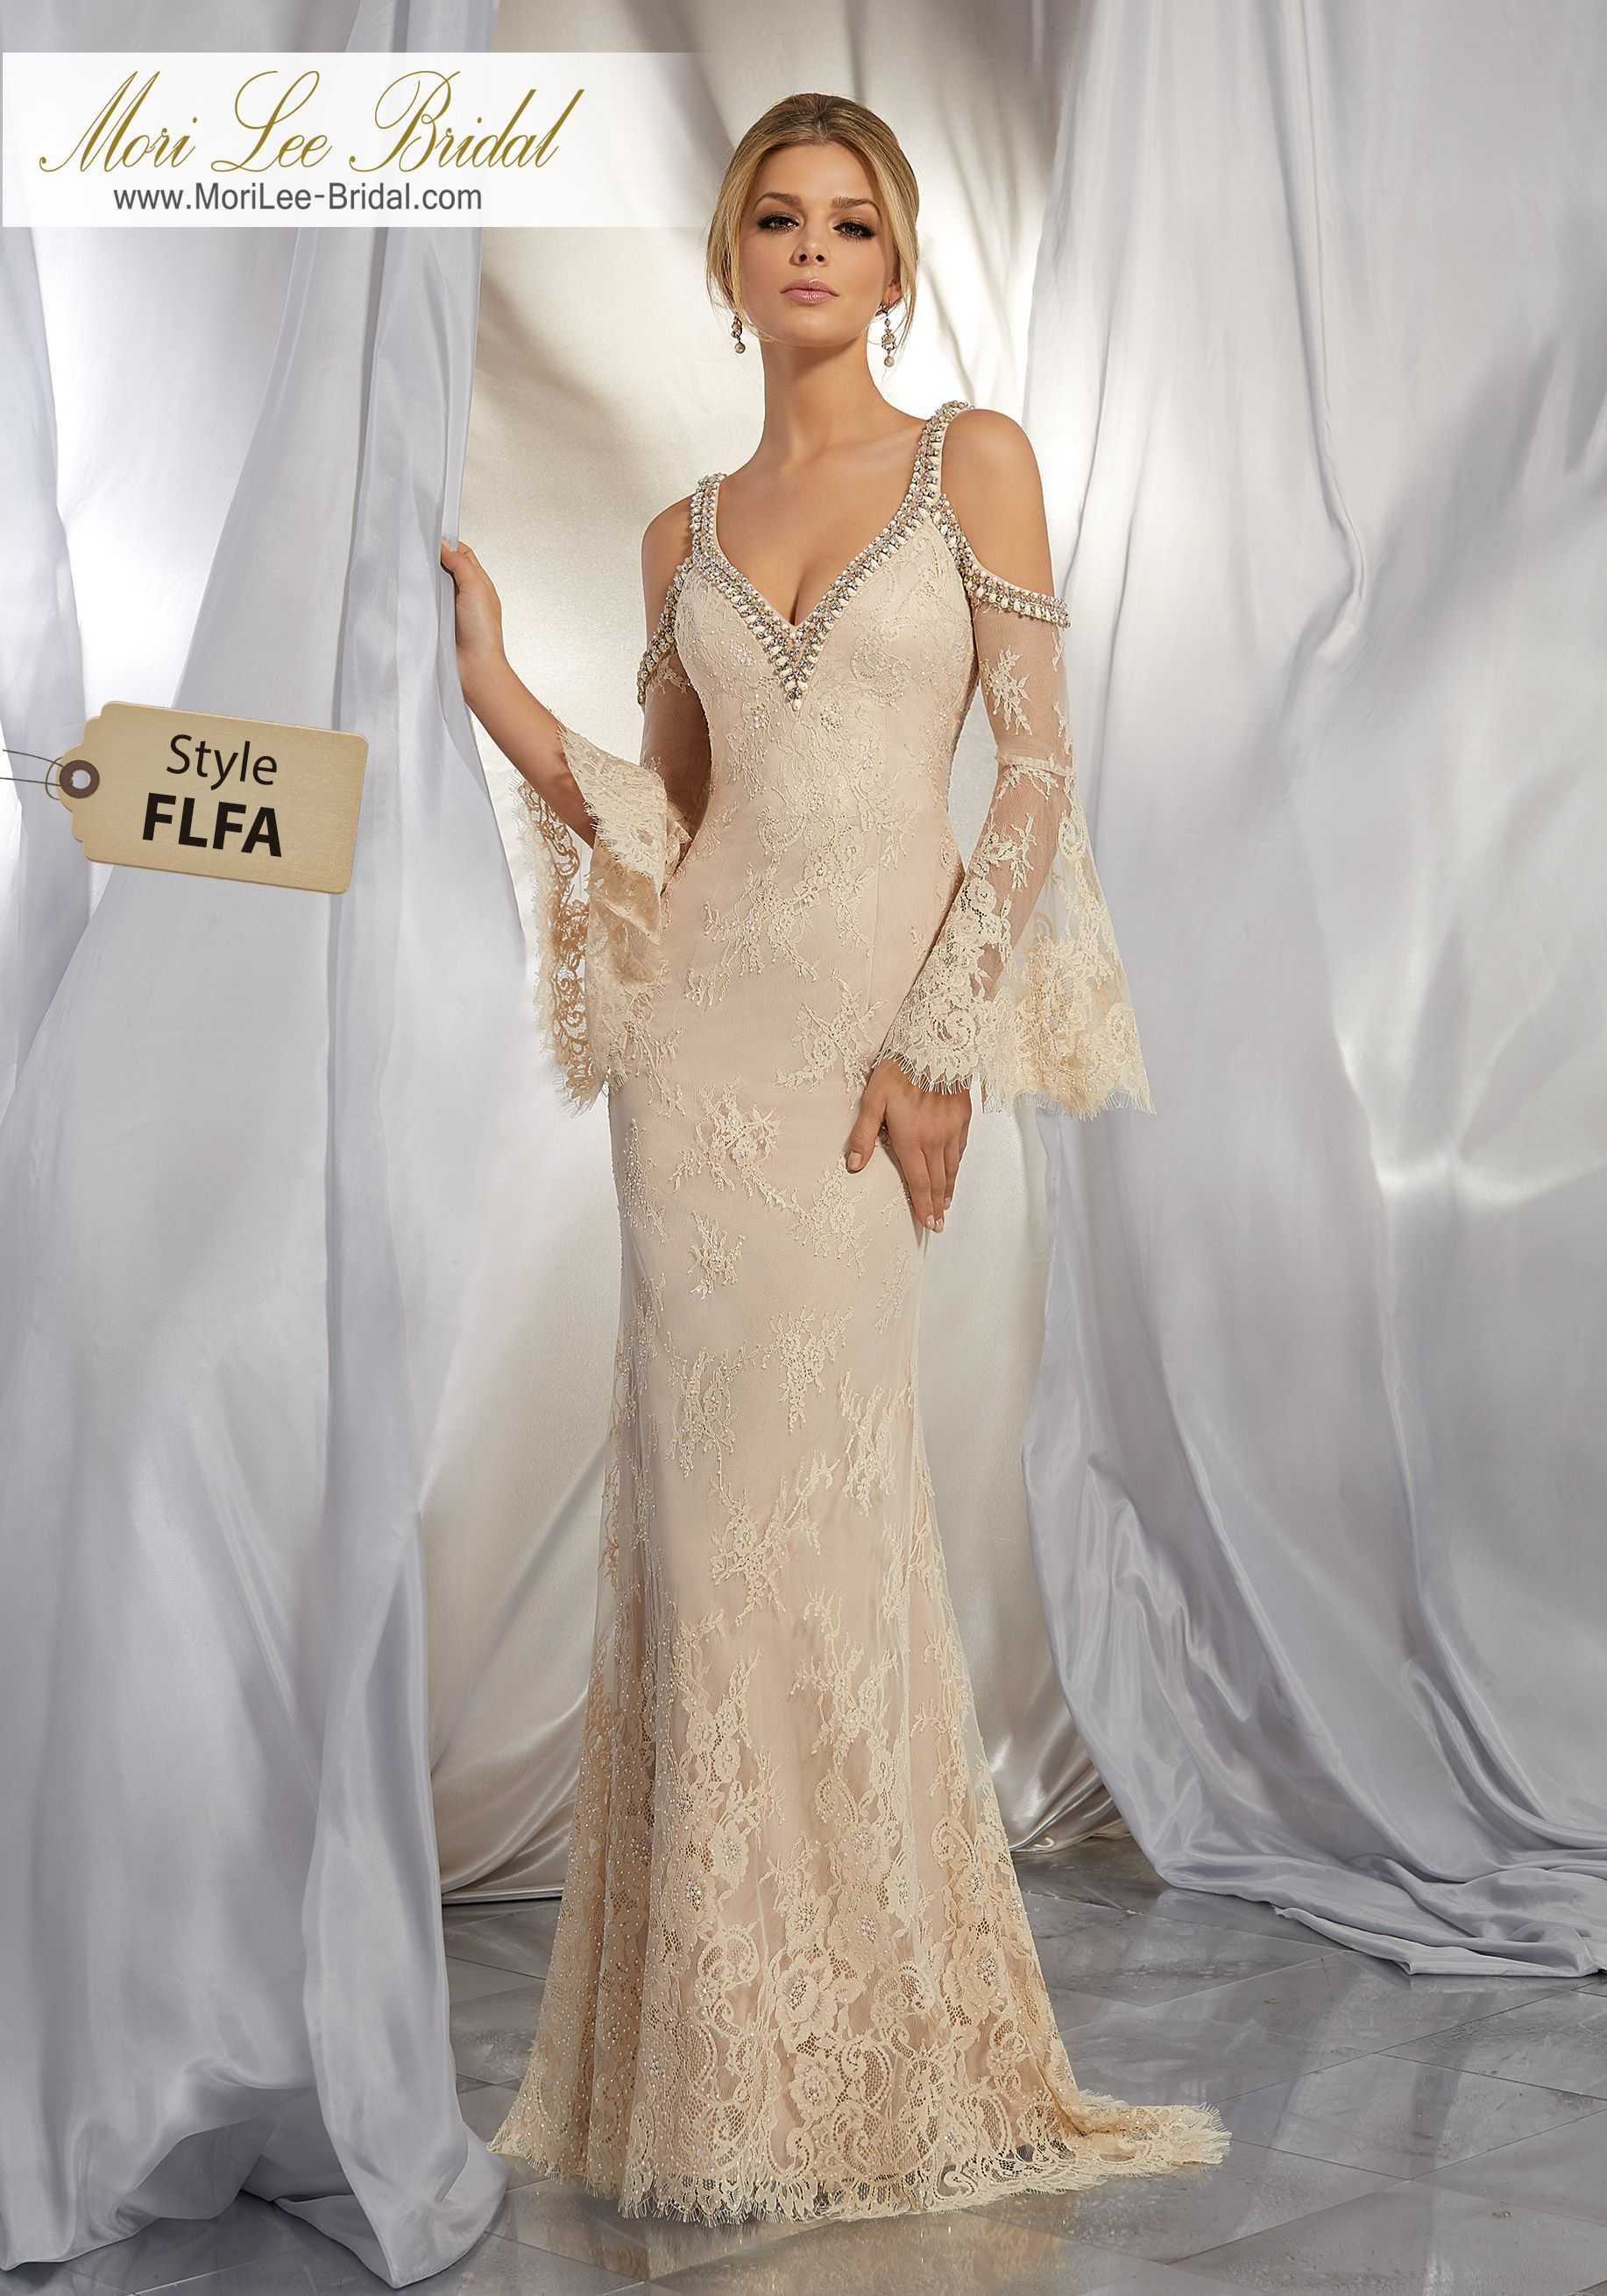 Mori Lee Wedding Dress Find And More At Aria Bridal In San Diego